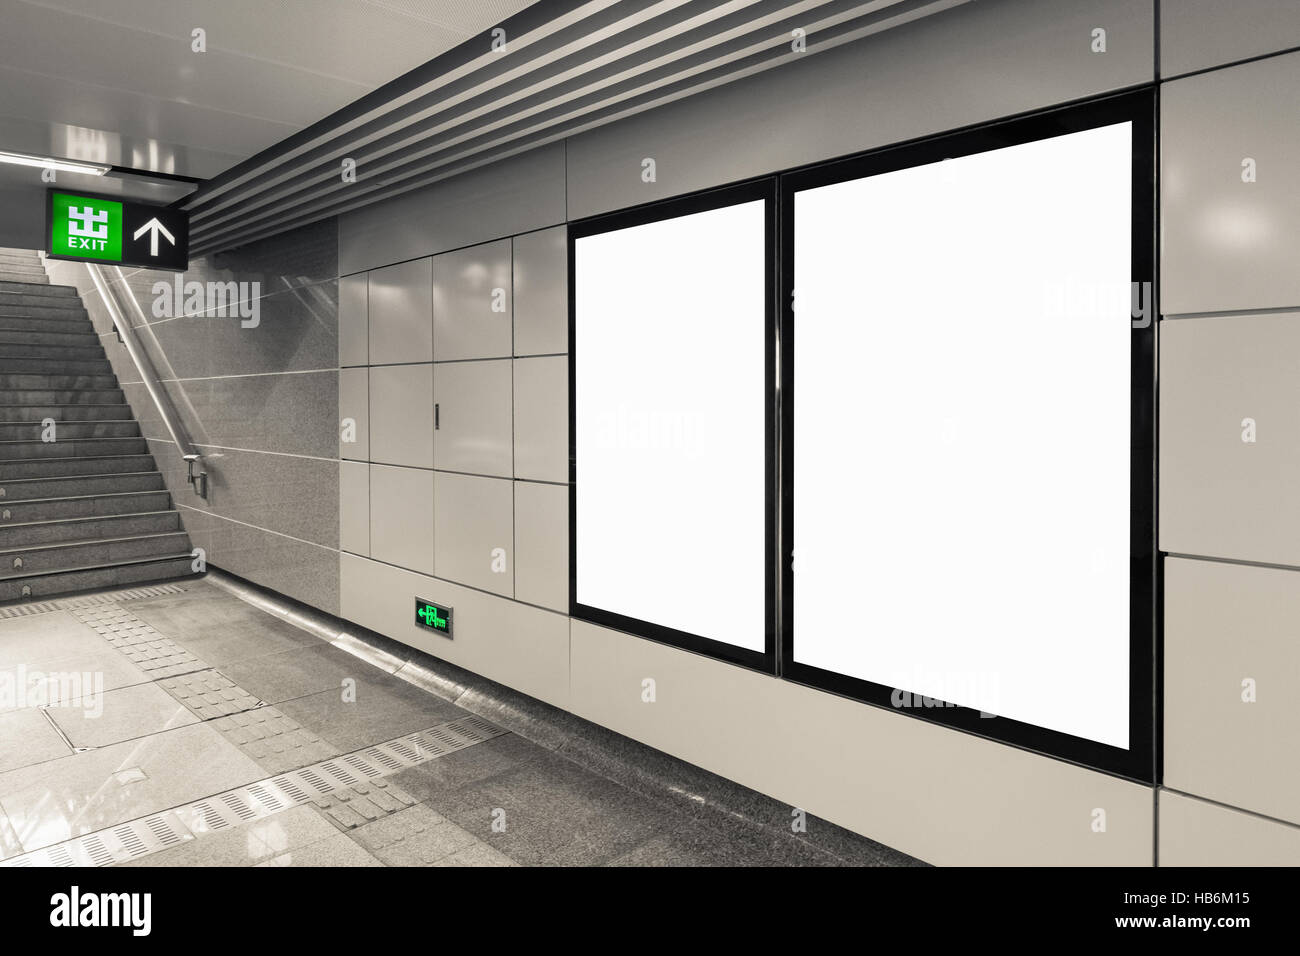 blank billboard in exit - Stock Image